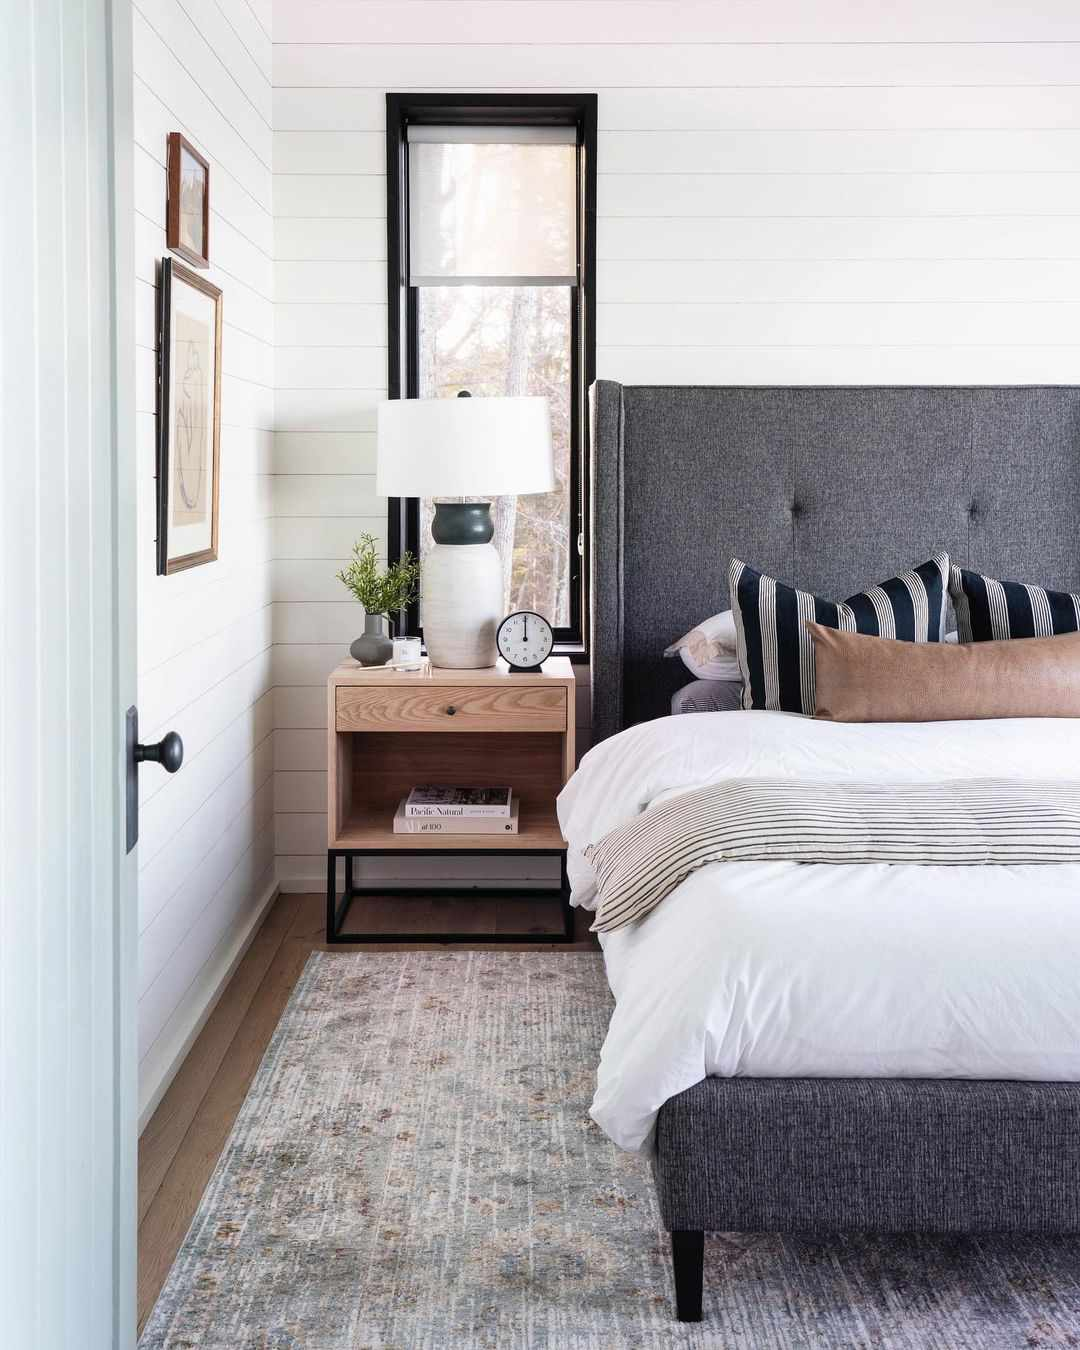 Bedroom with white linens